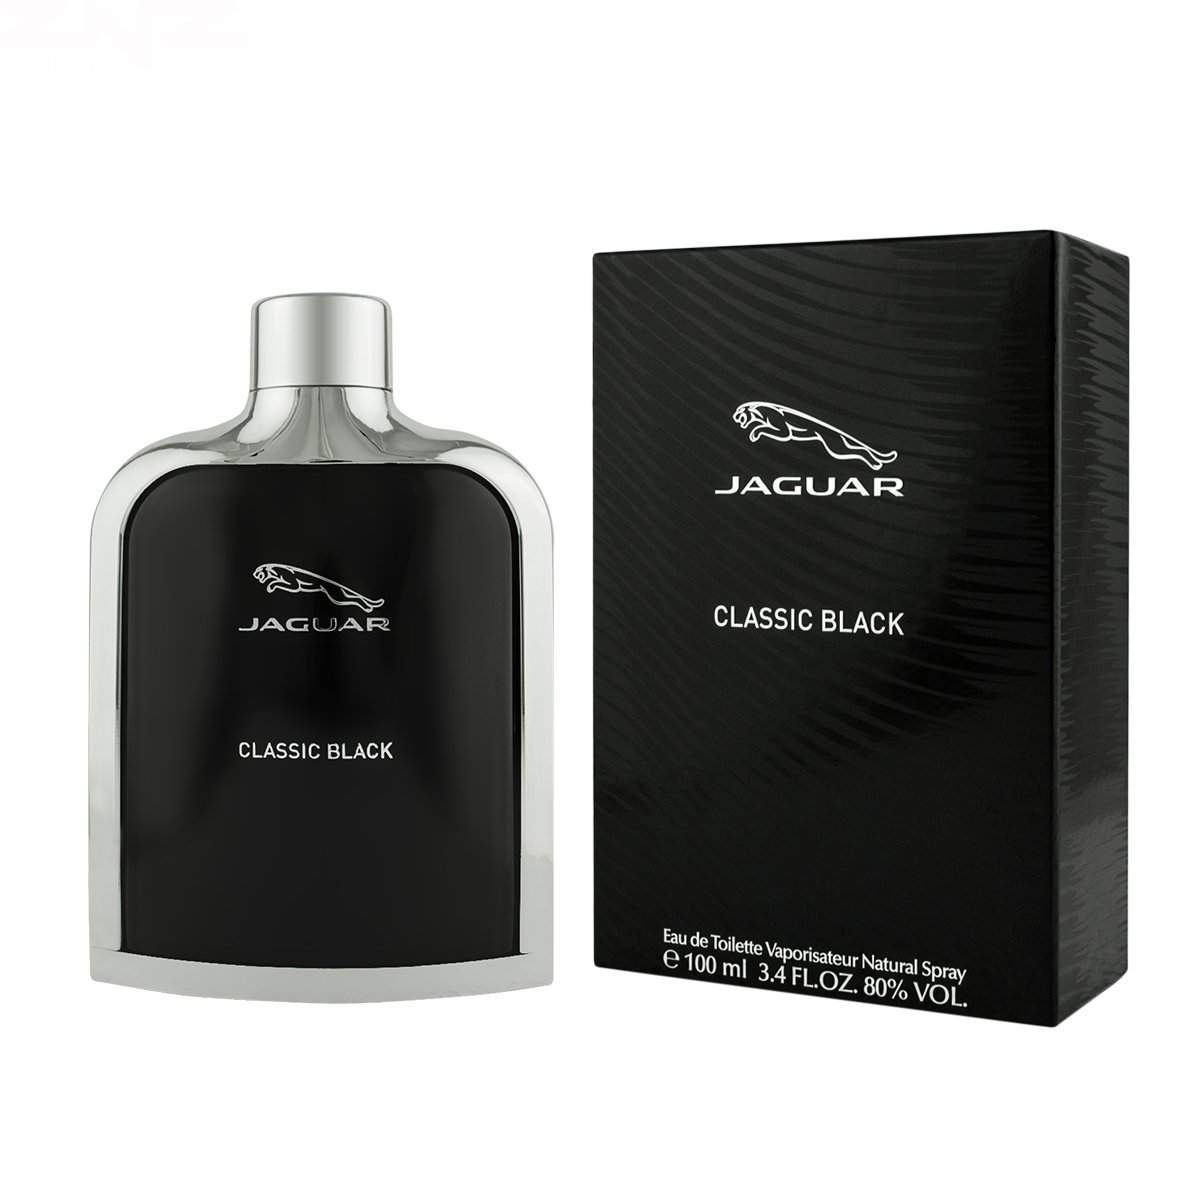 jaguar classic black for men edt 100ml home shopping. Black Bedroom Furniture Sets. Home Design Ideas